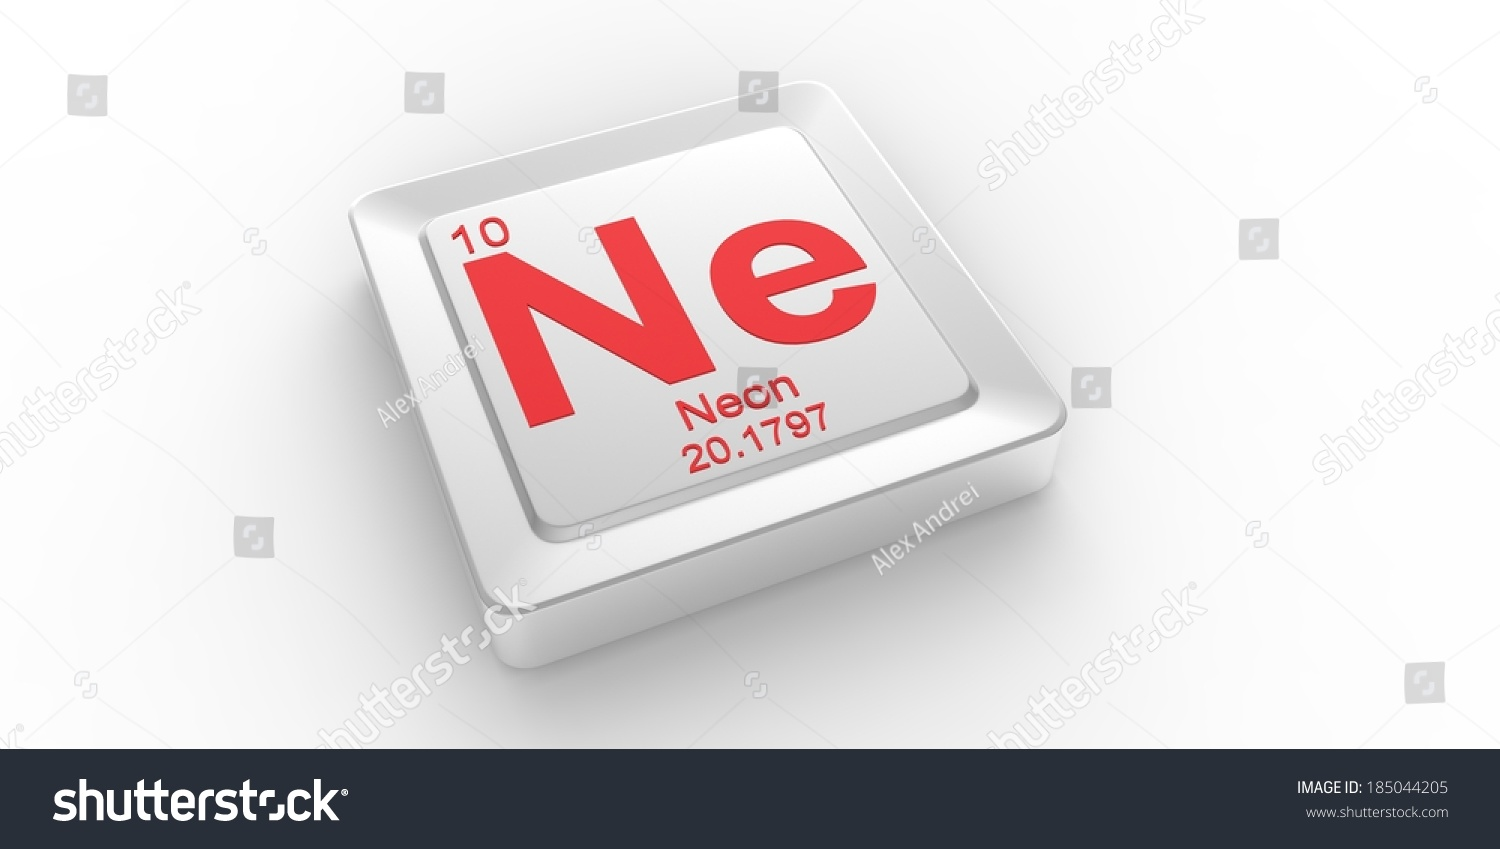 Ne symbol 10 material neon chemical stock illustration 185044205 ne symbol 10 material for neon chemical element of the periodic table buycottarizona Choice Image